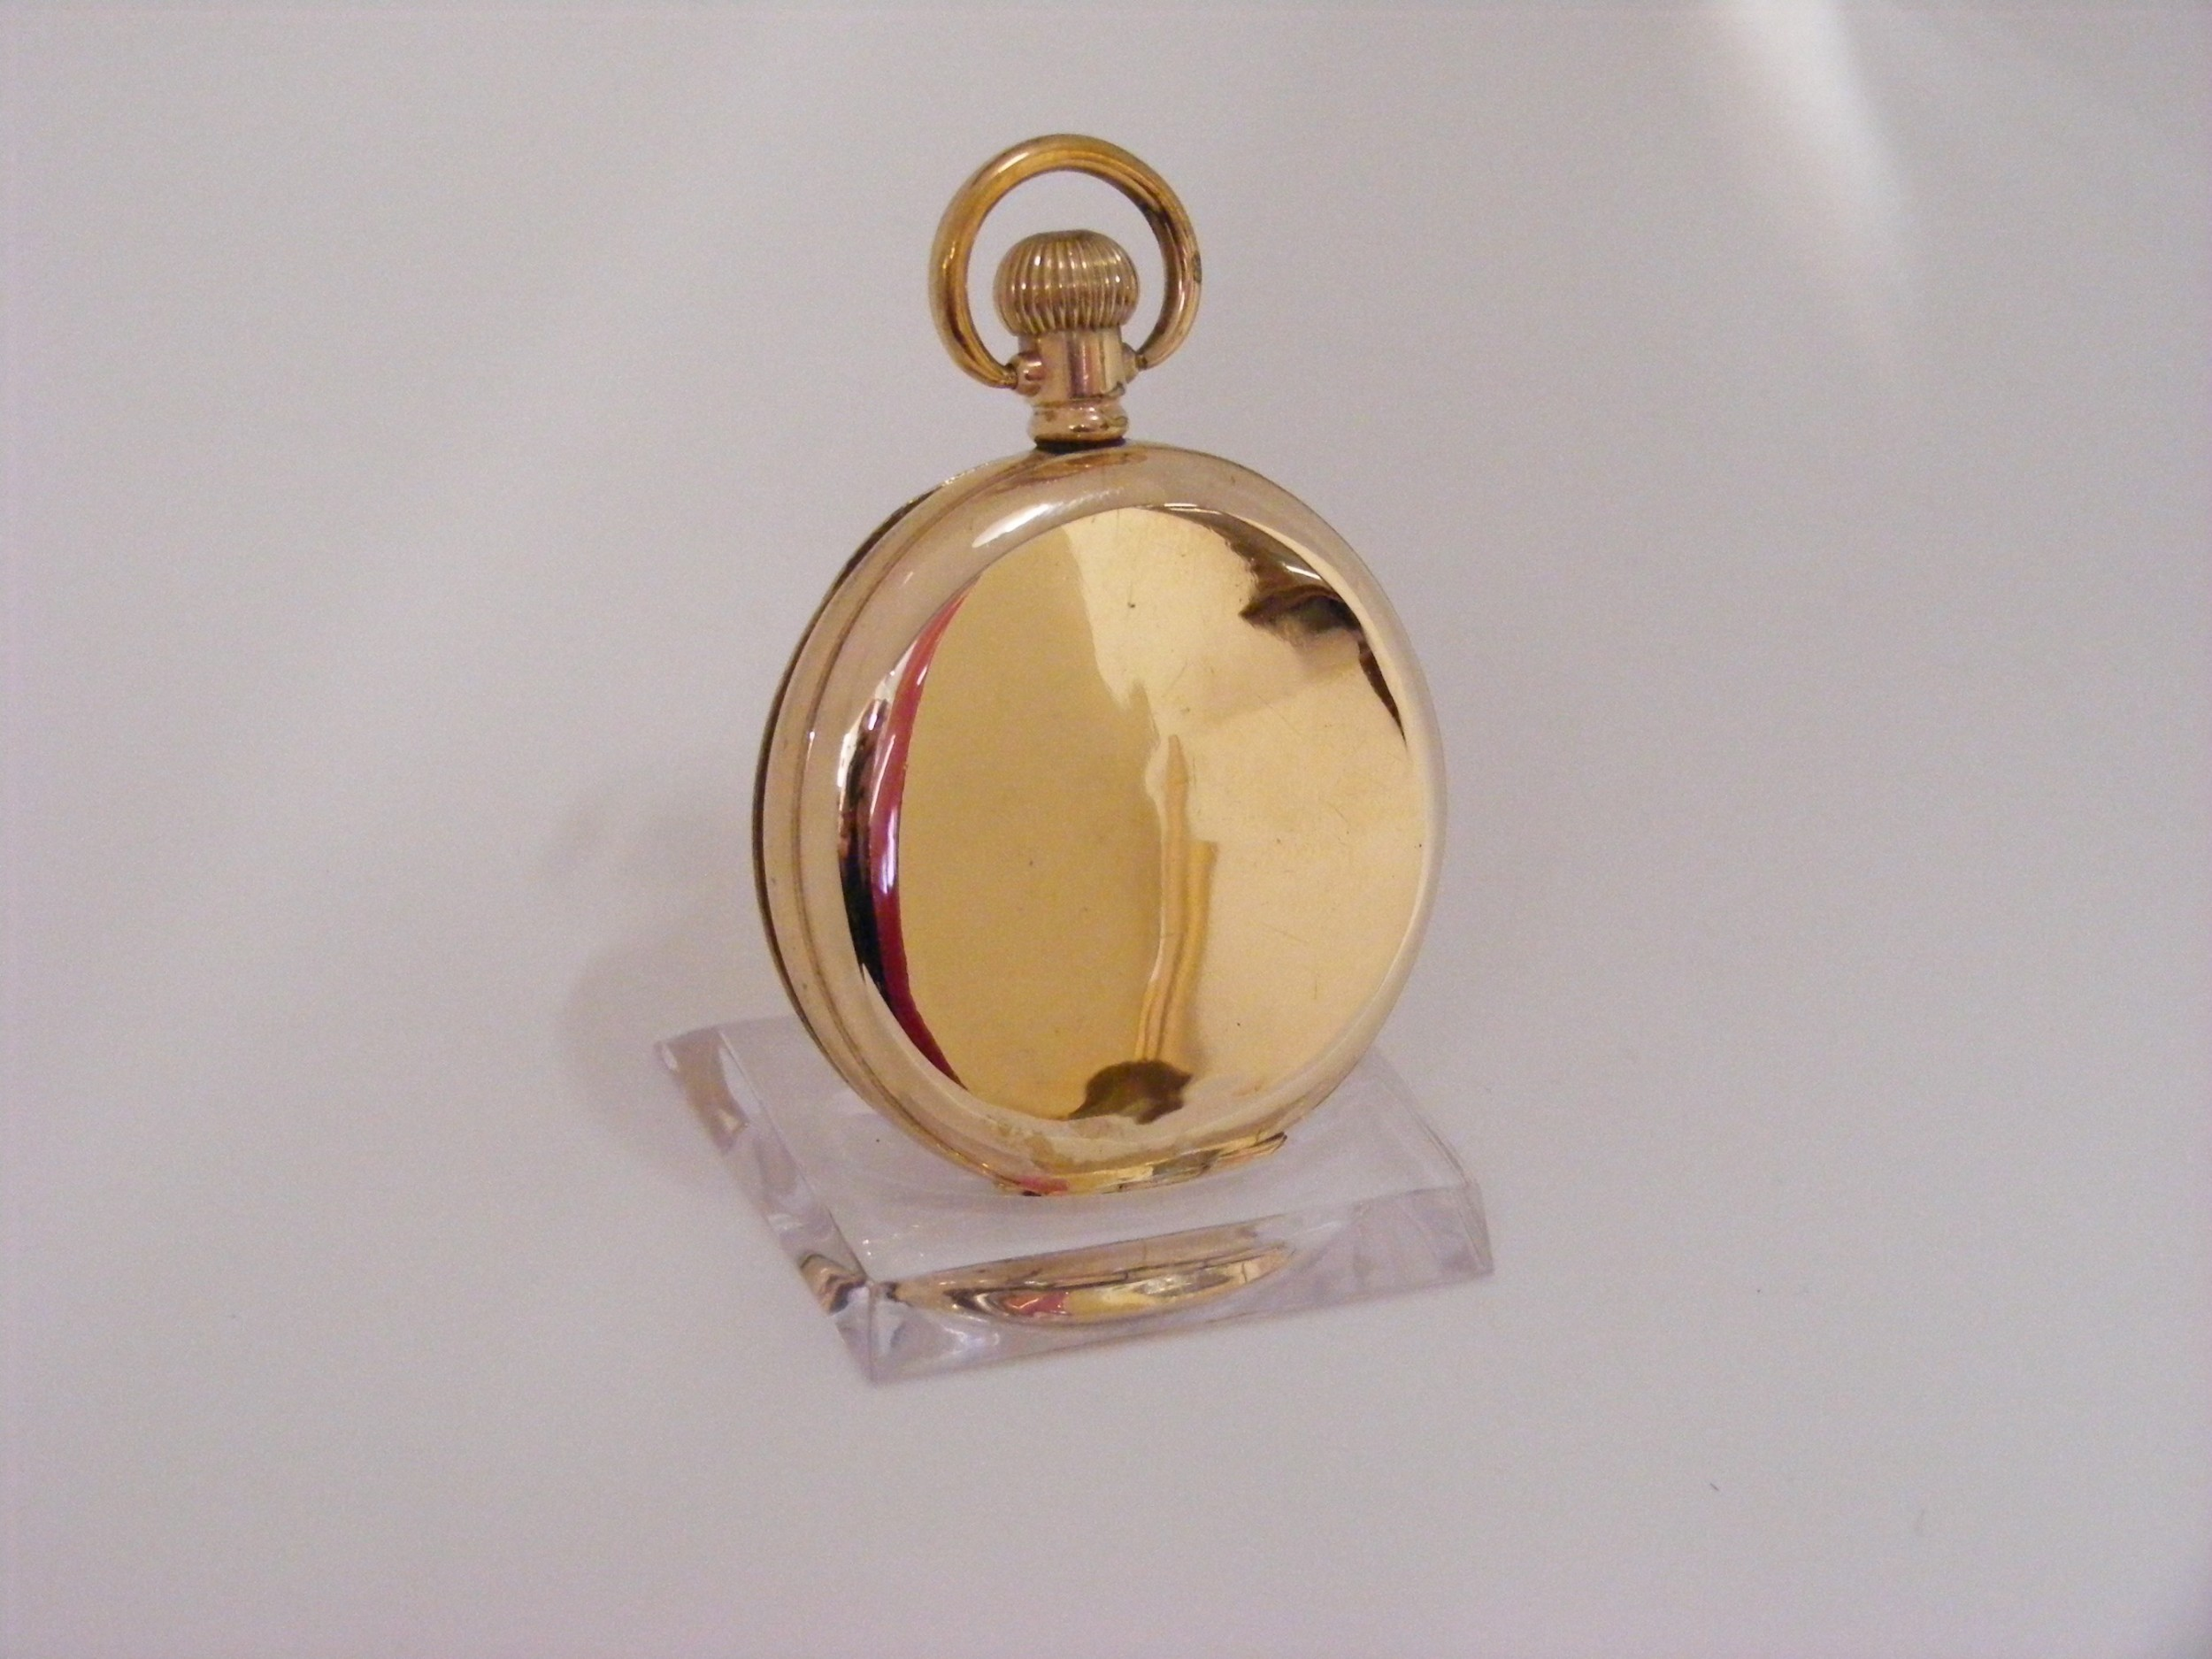 waltham 17 jewel hunting case pocket watch serviced warranted